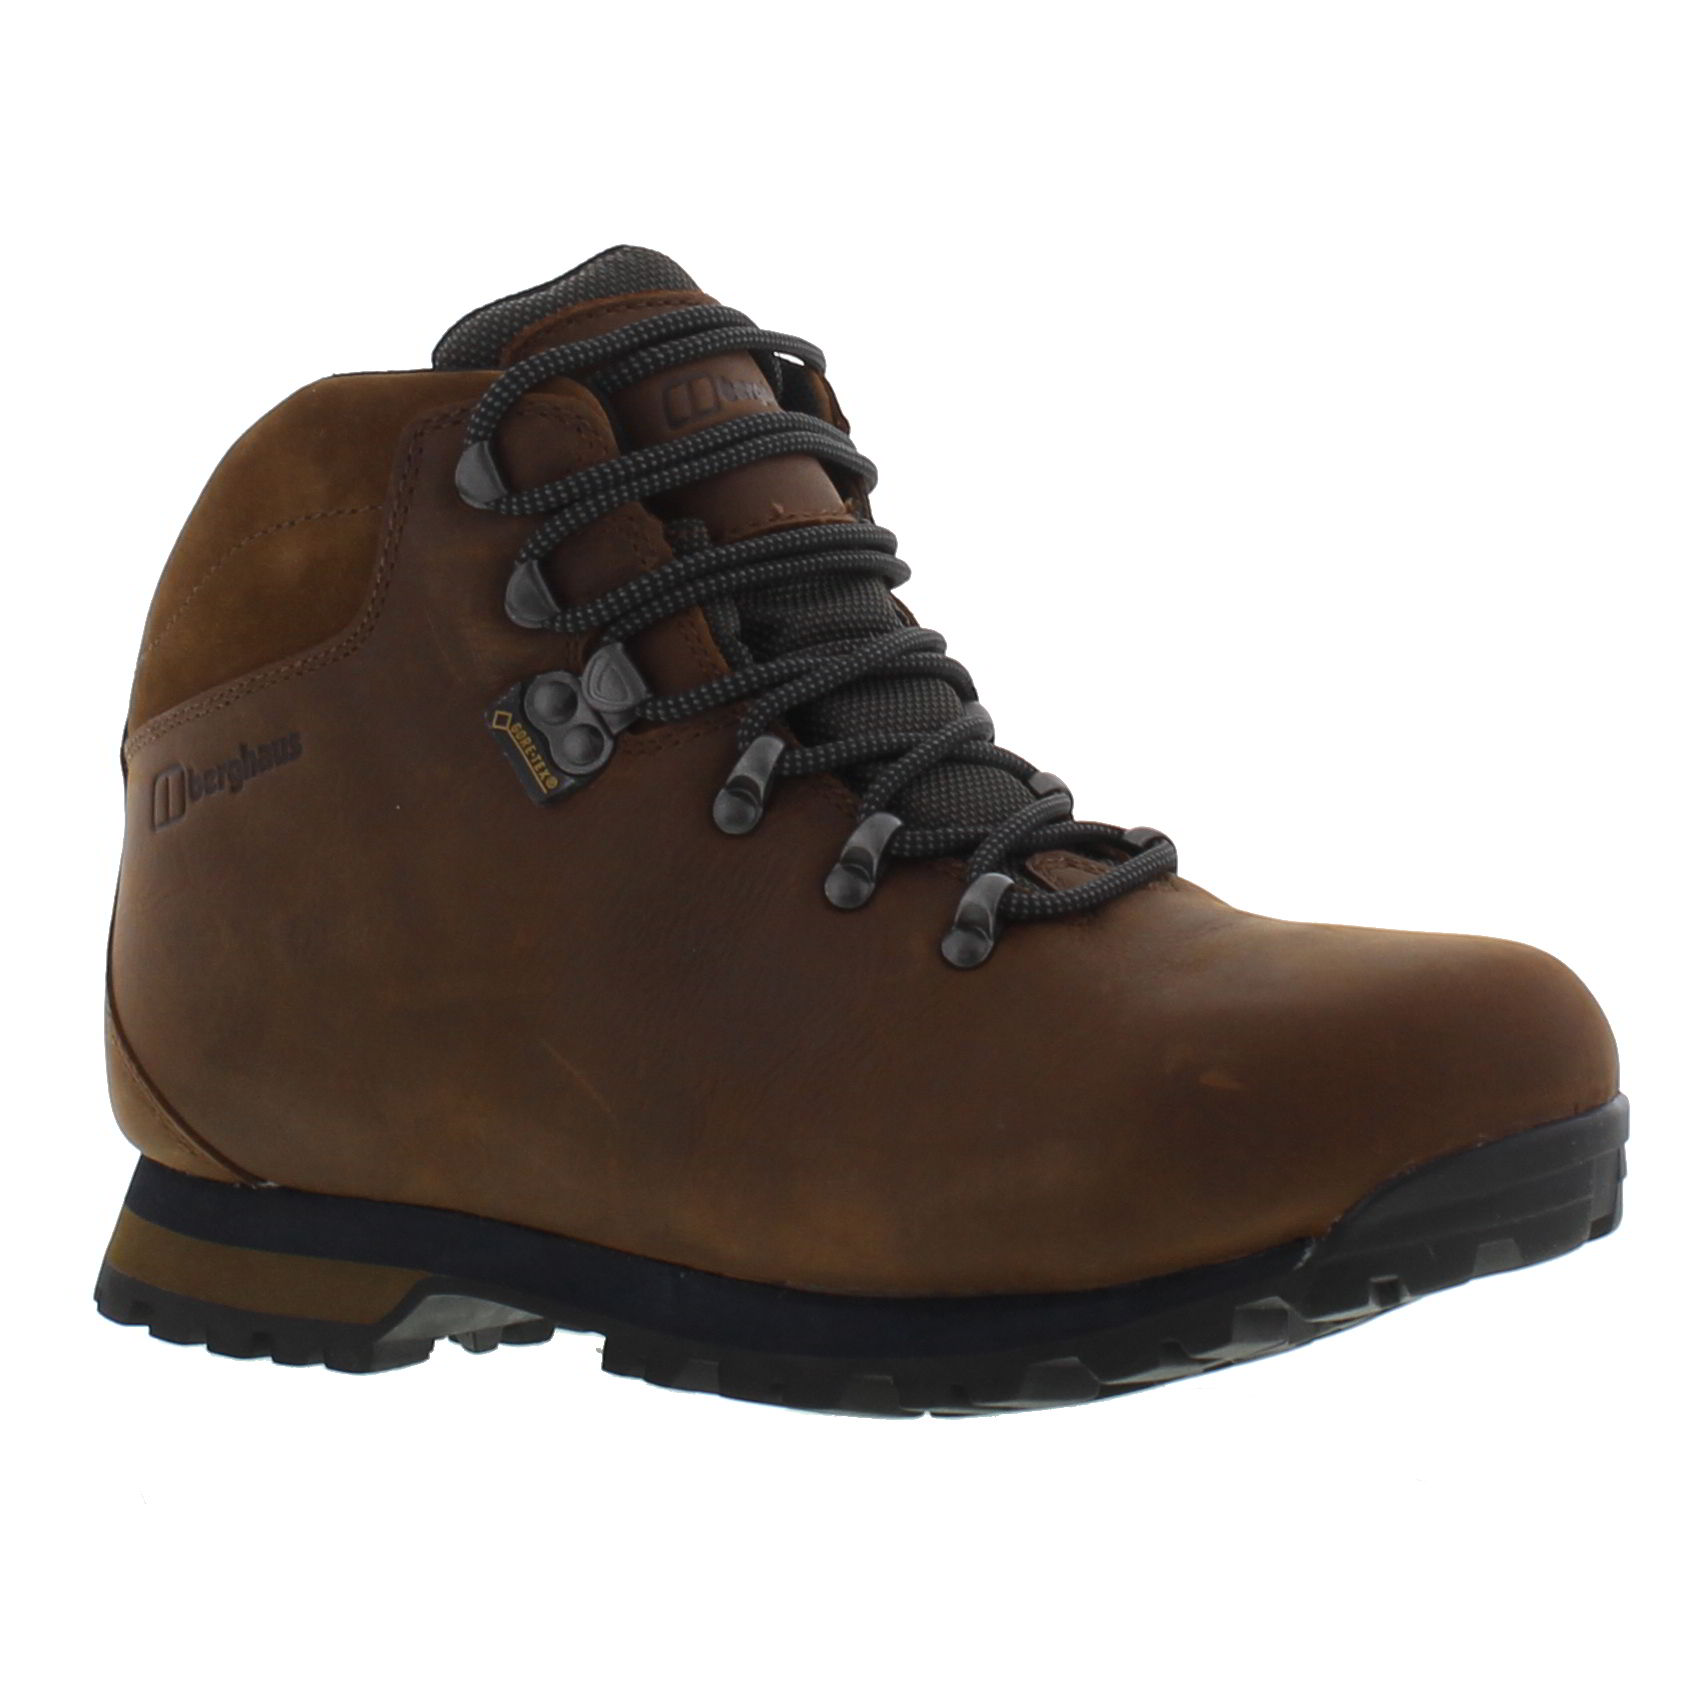 Berghaus Shoes Mens Stxle